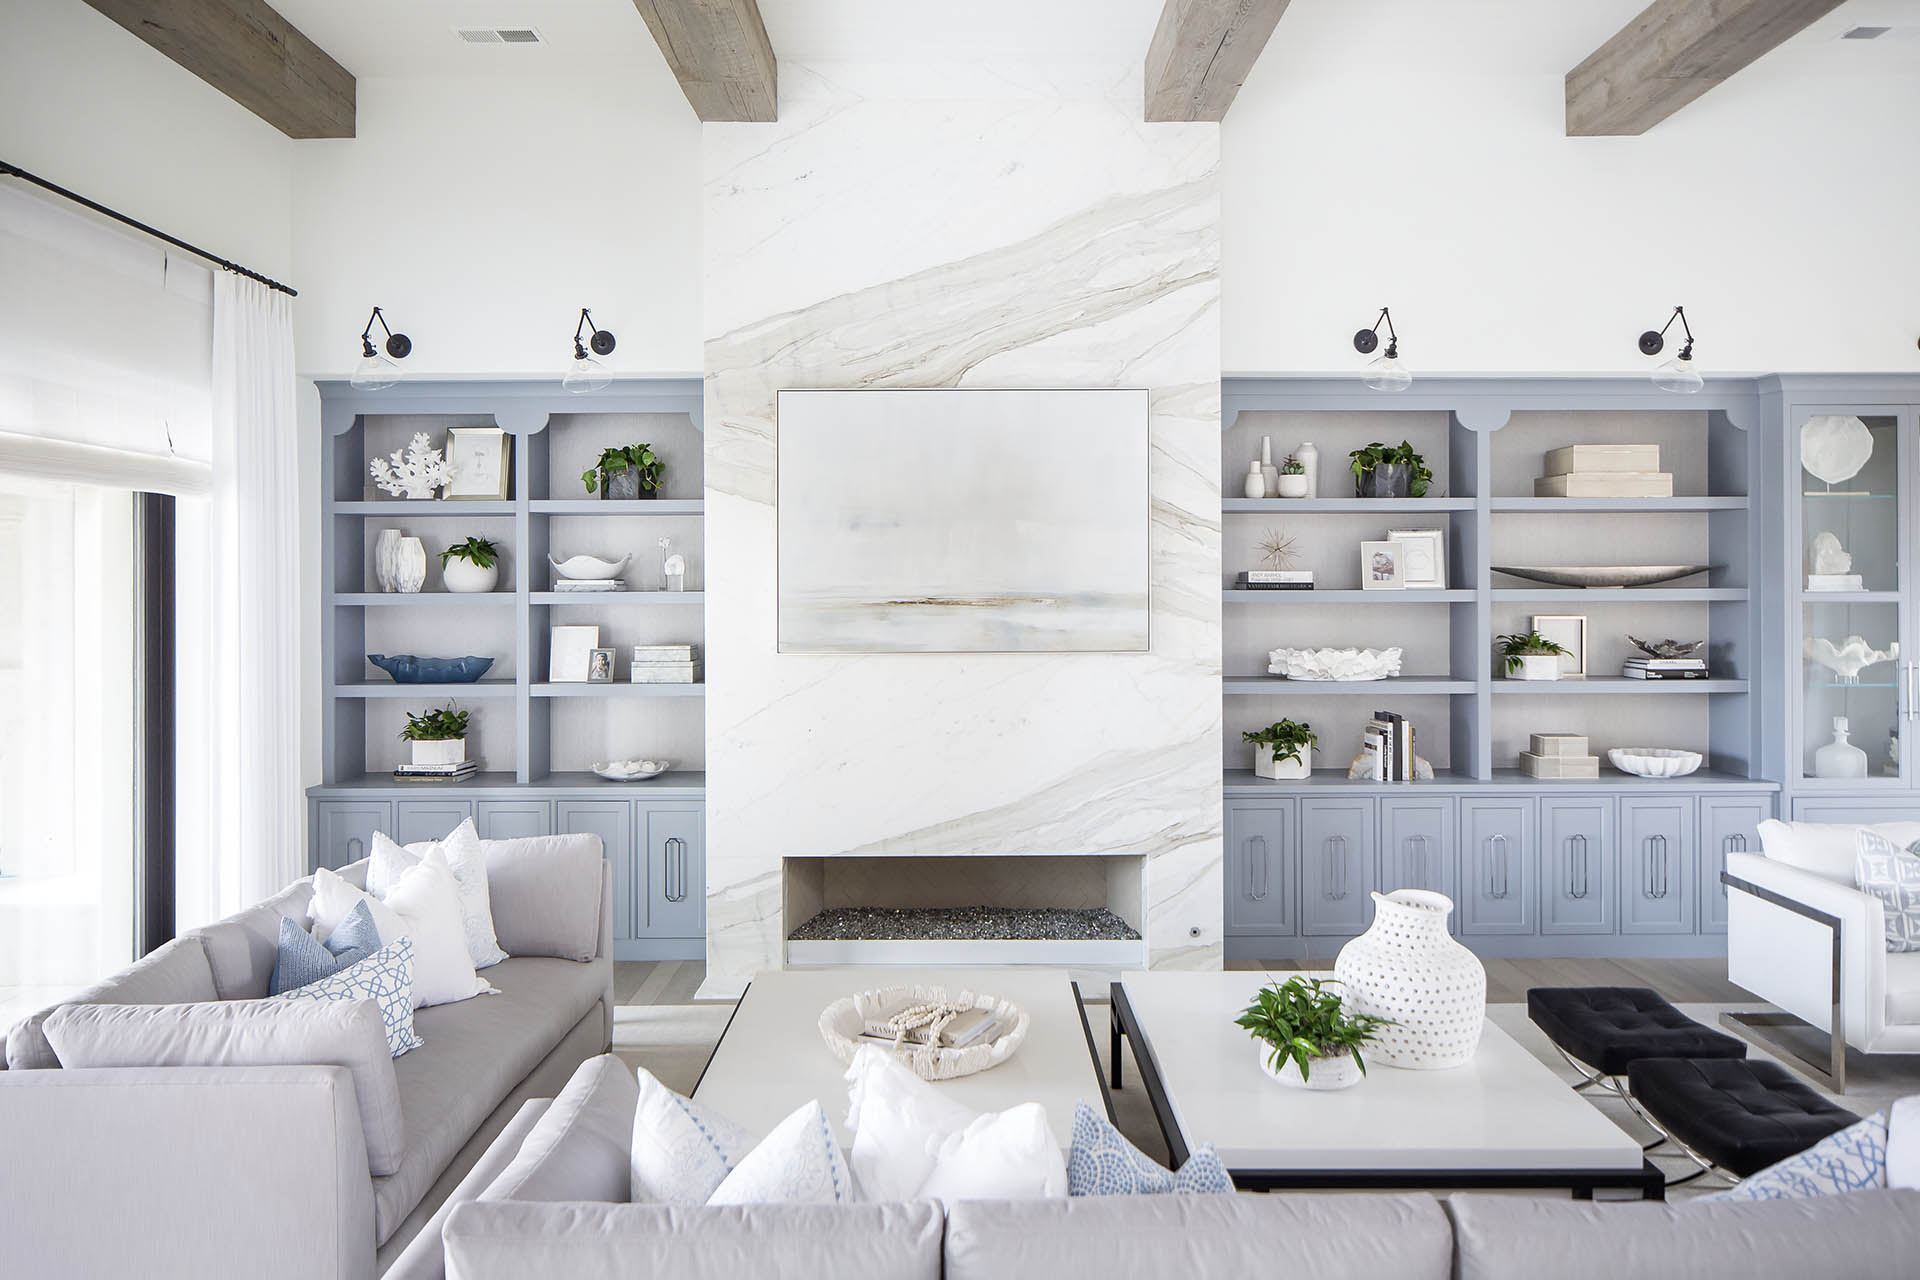 Tracy Lynn Studio Interior Design in San Diego